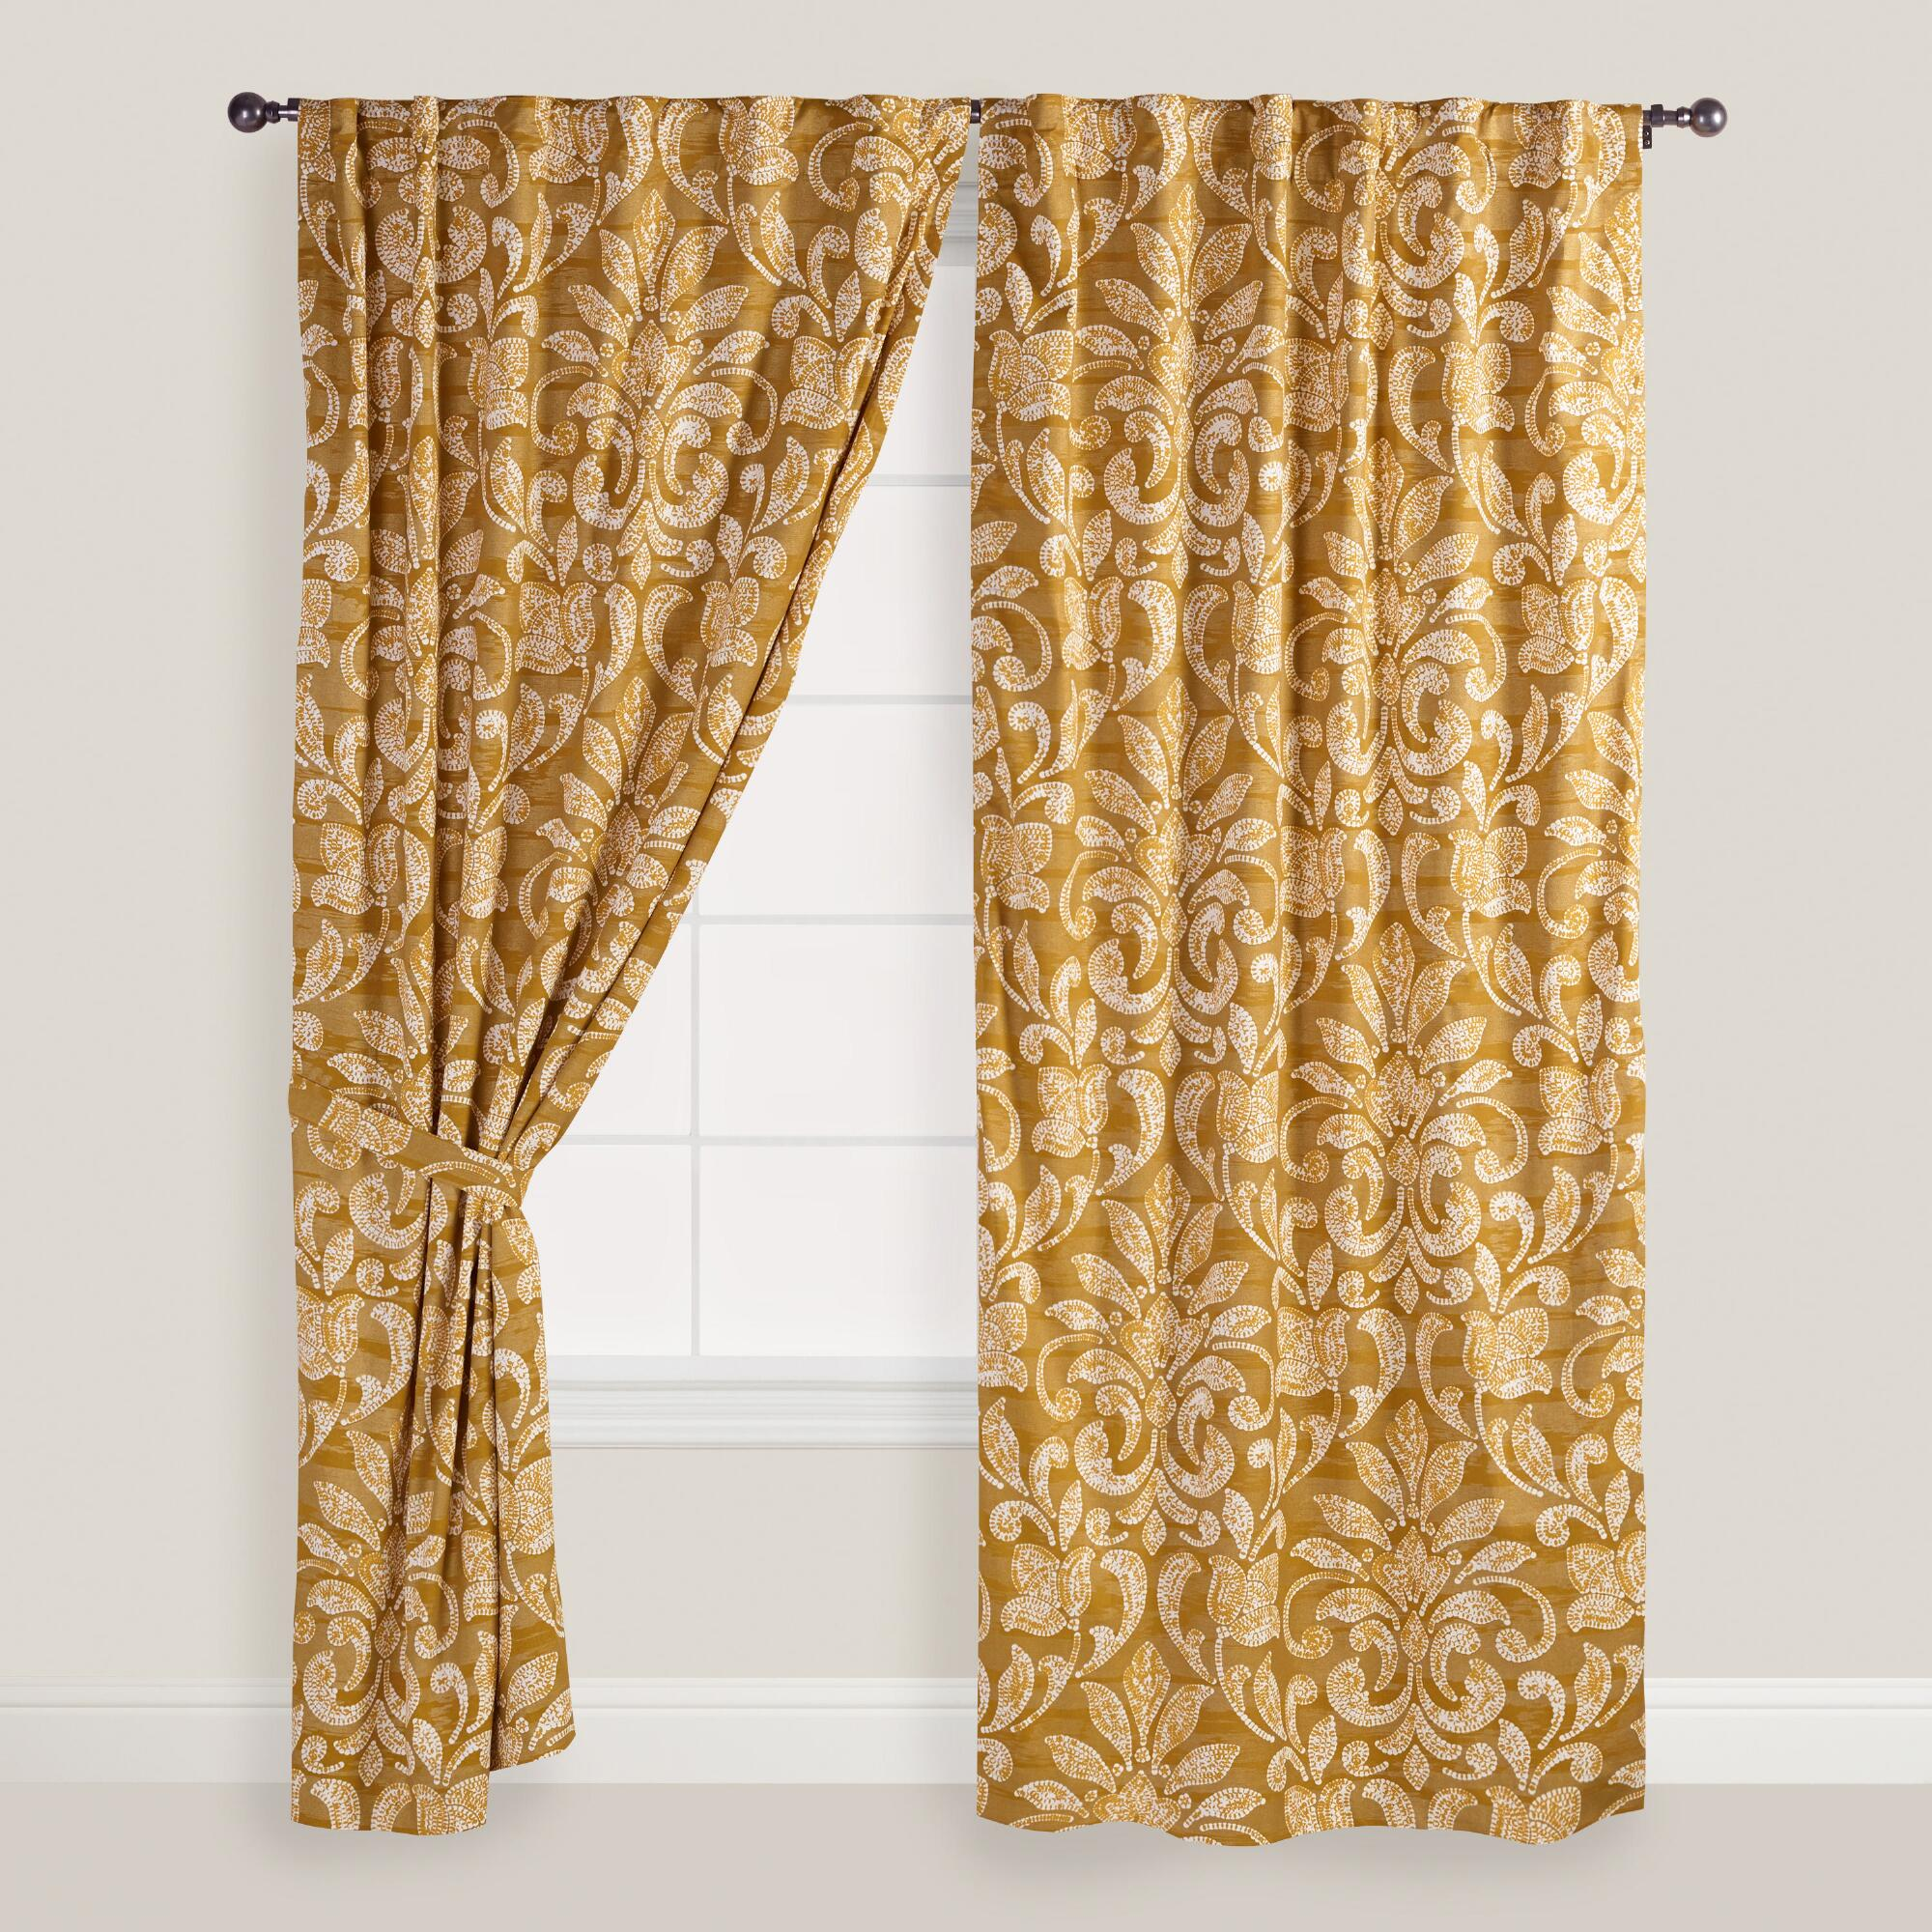 gold and white floral becco curtains set of 2 world market. Black Bedroom Furniture Sets. Home Design Ideas